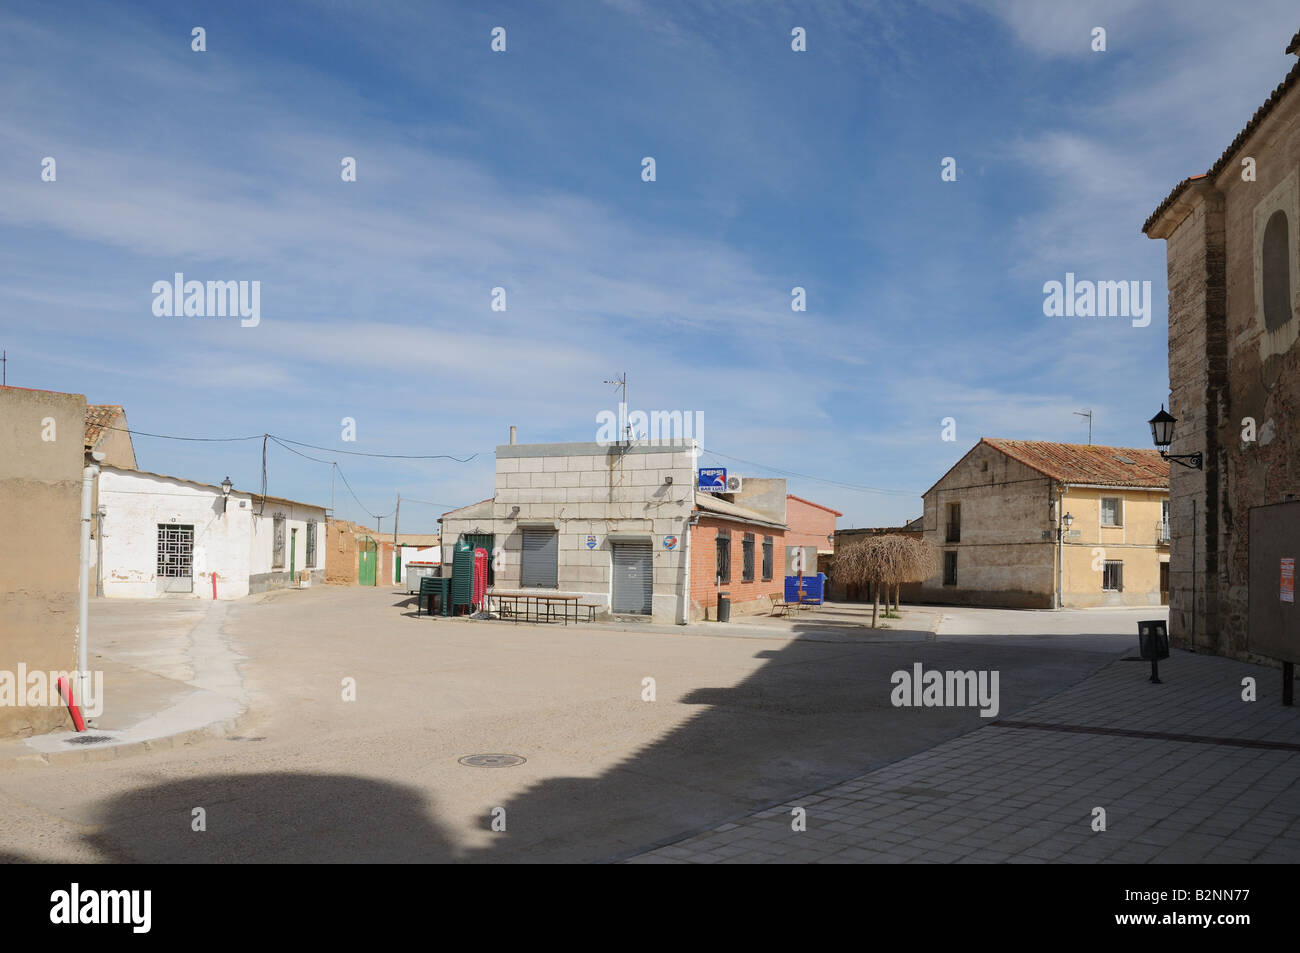 Deserted square of cheap tawdry modern buildings including shuttered closed shop and bar in village of Banos de - Stock Image